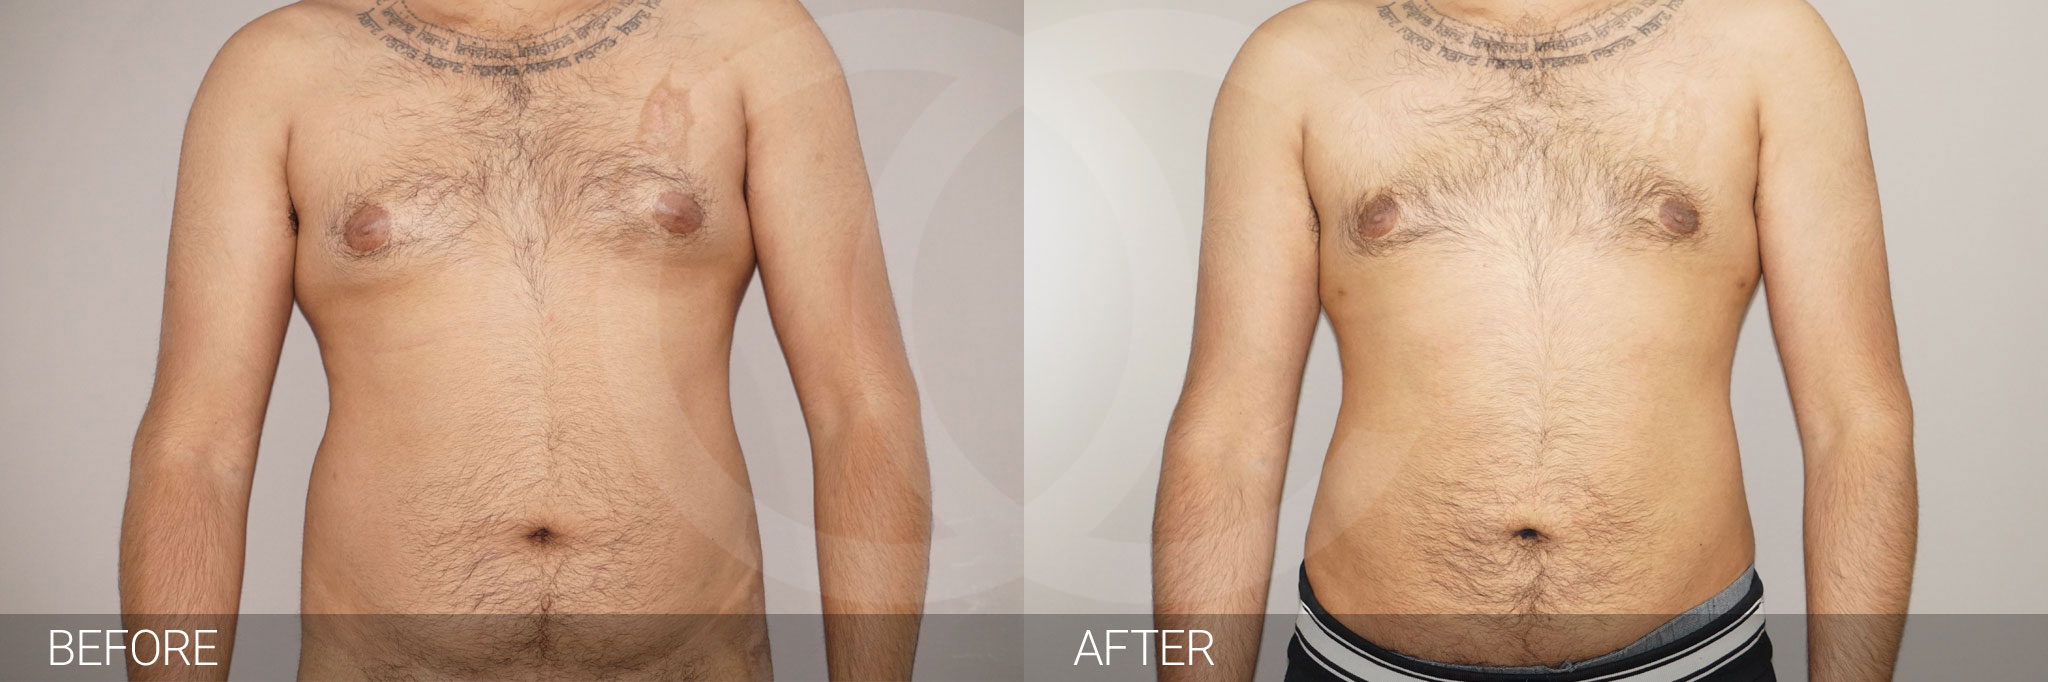 Liposuction Male surgery ante/post-op I